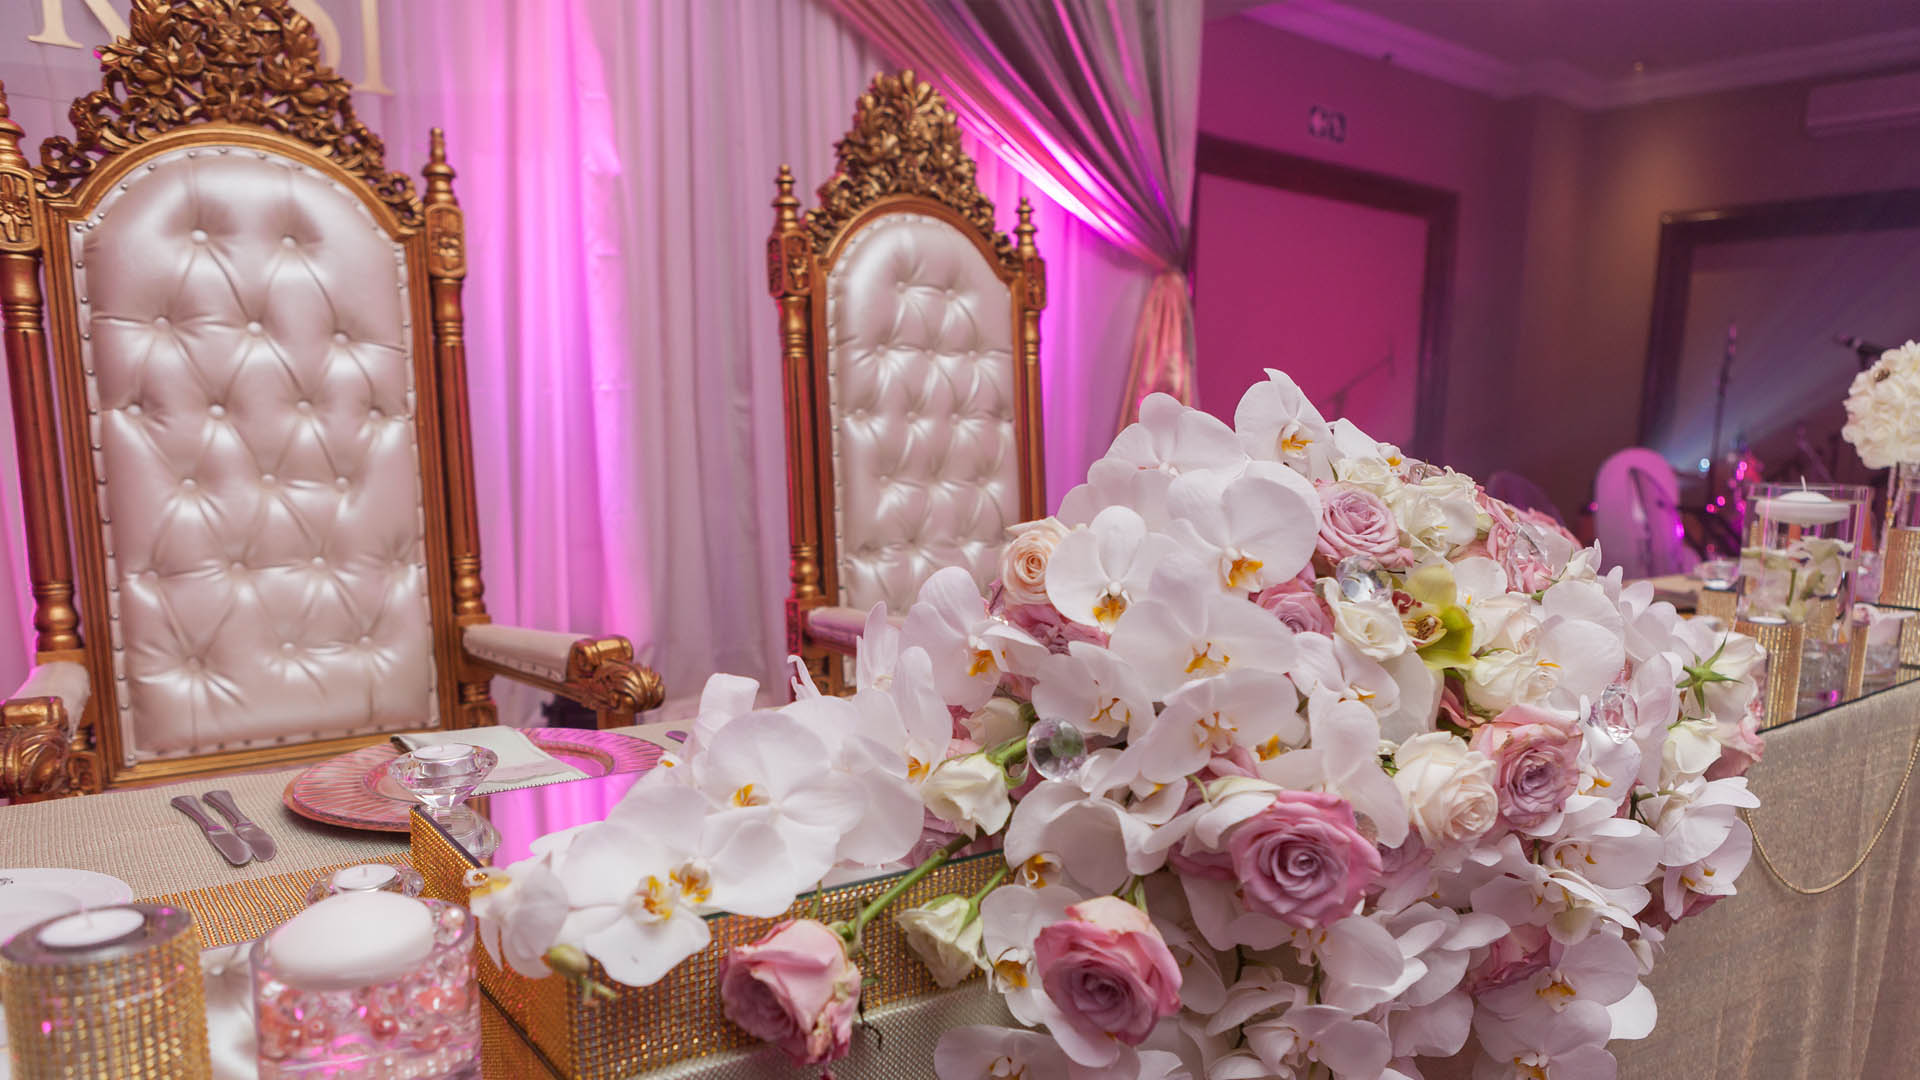 Nkosinathi & Nonduduzo - SA Wedding Decor